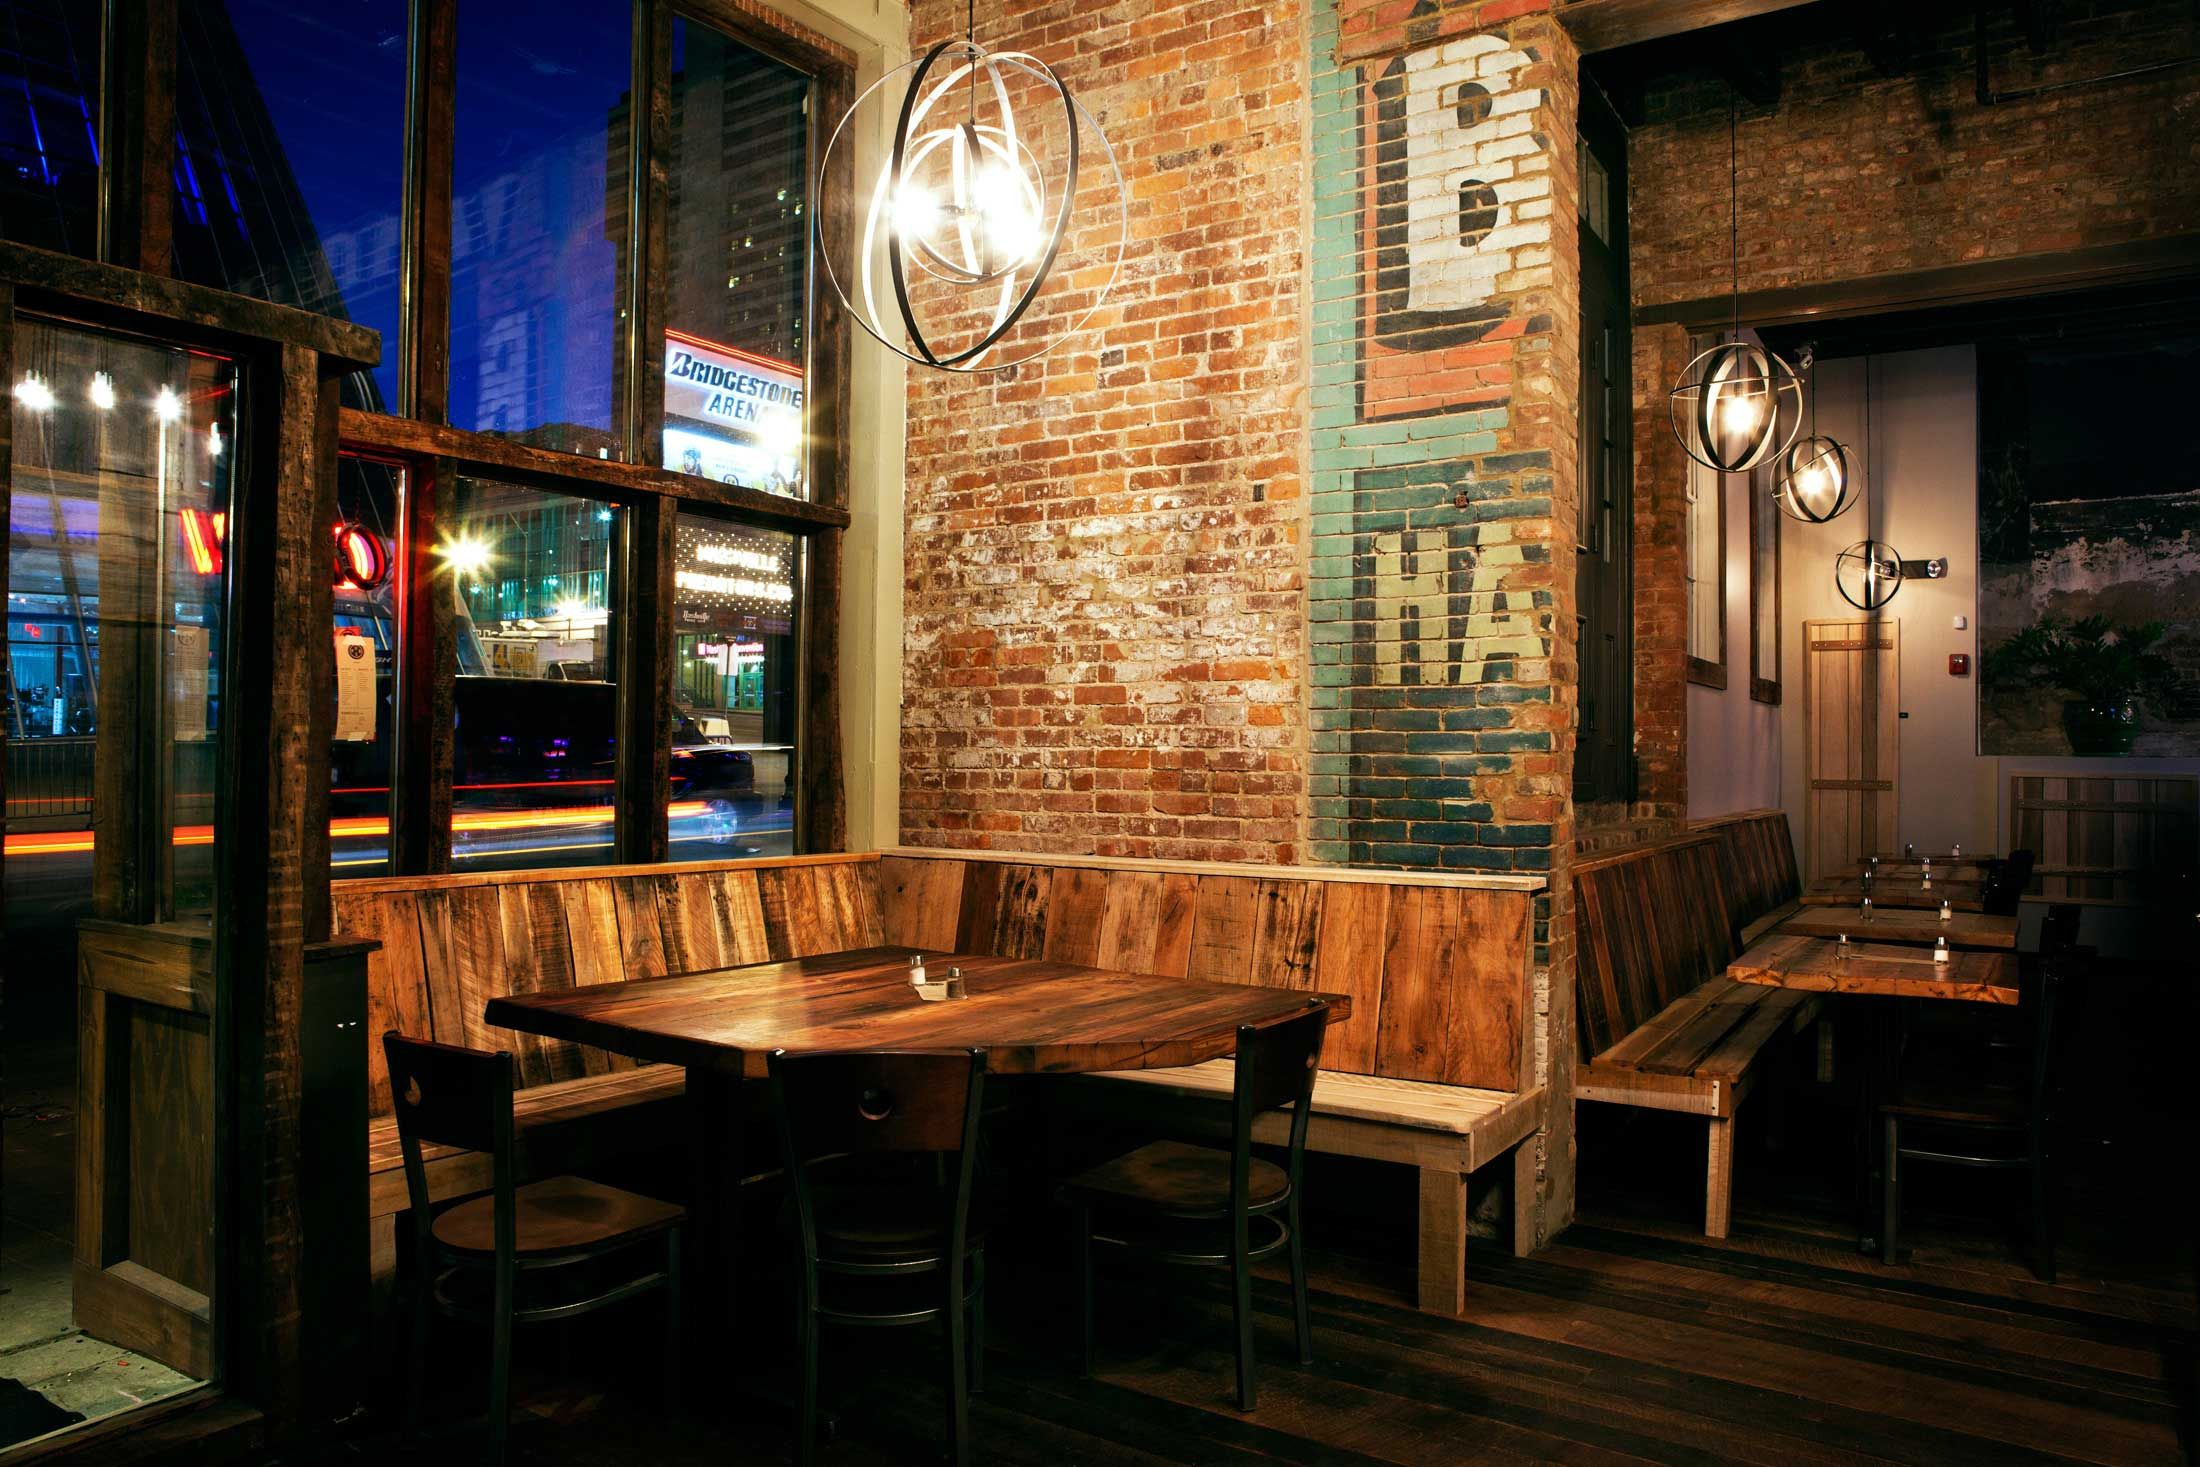 Date Night Discover Pub5 Restaurant Downtown Nashville